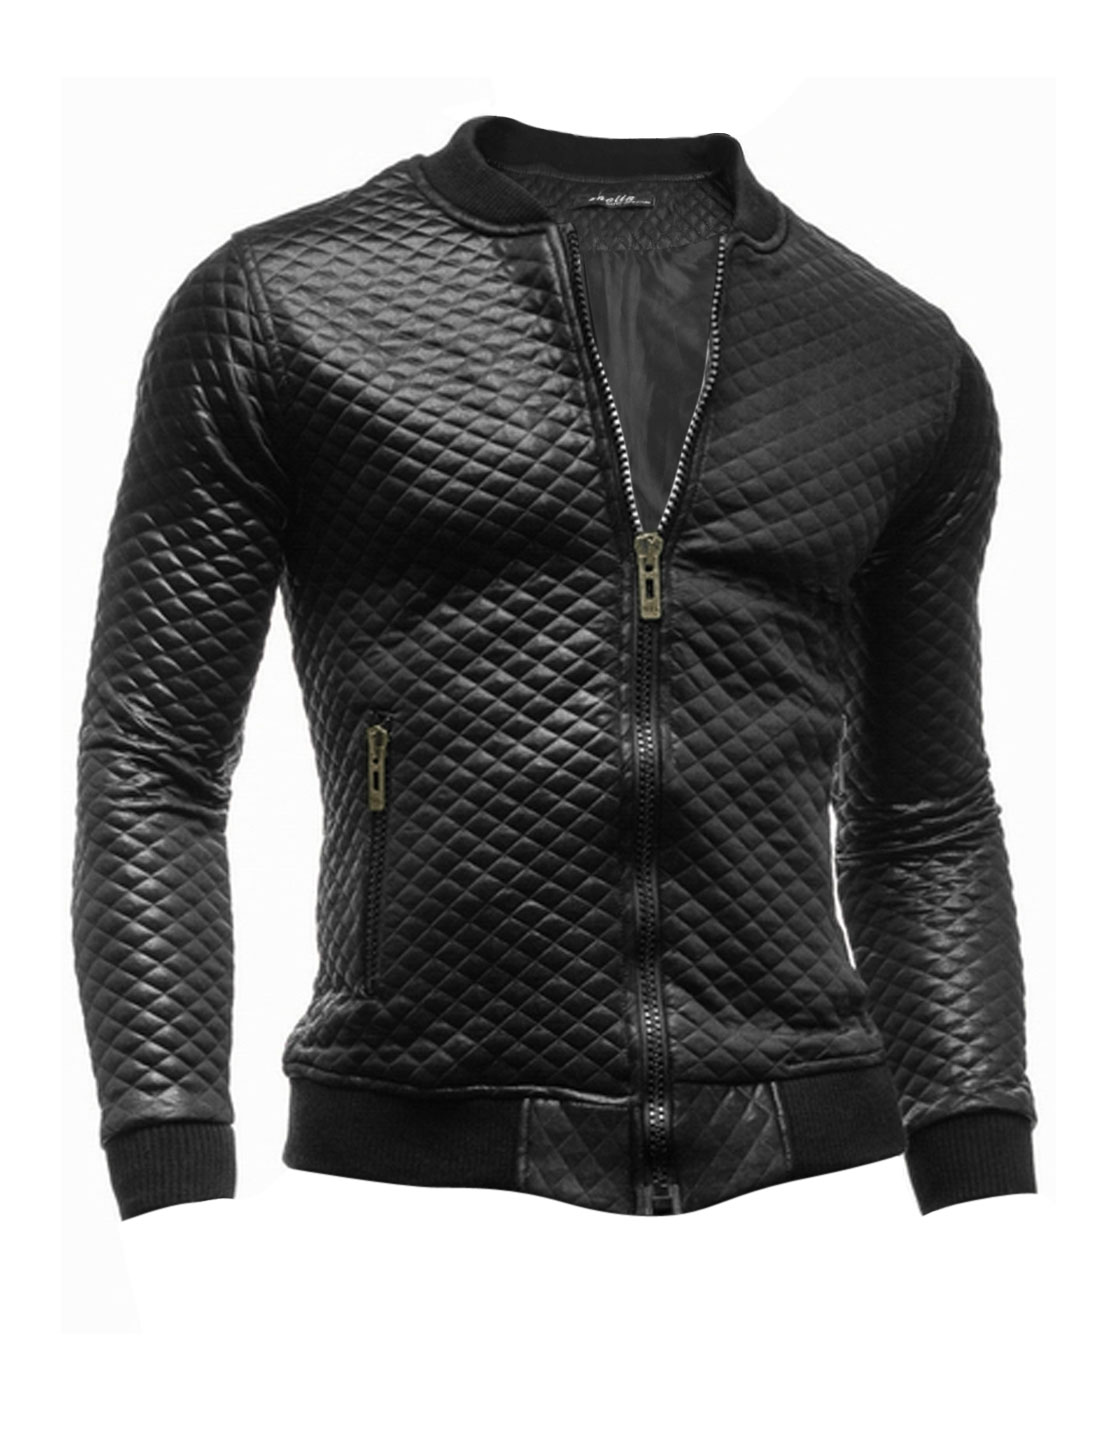 Men Stand Collar Zip Closure Agryle Design Chic Imitation Leather Jacket Black M